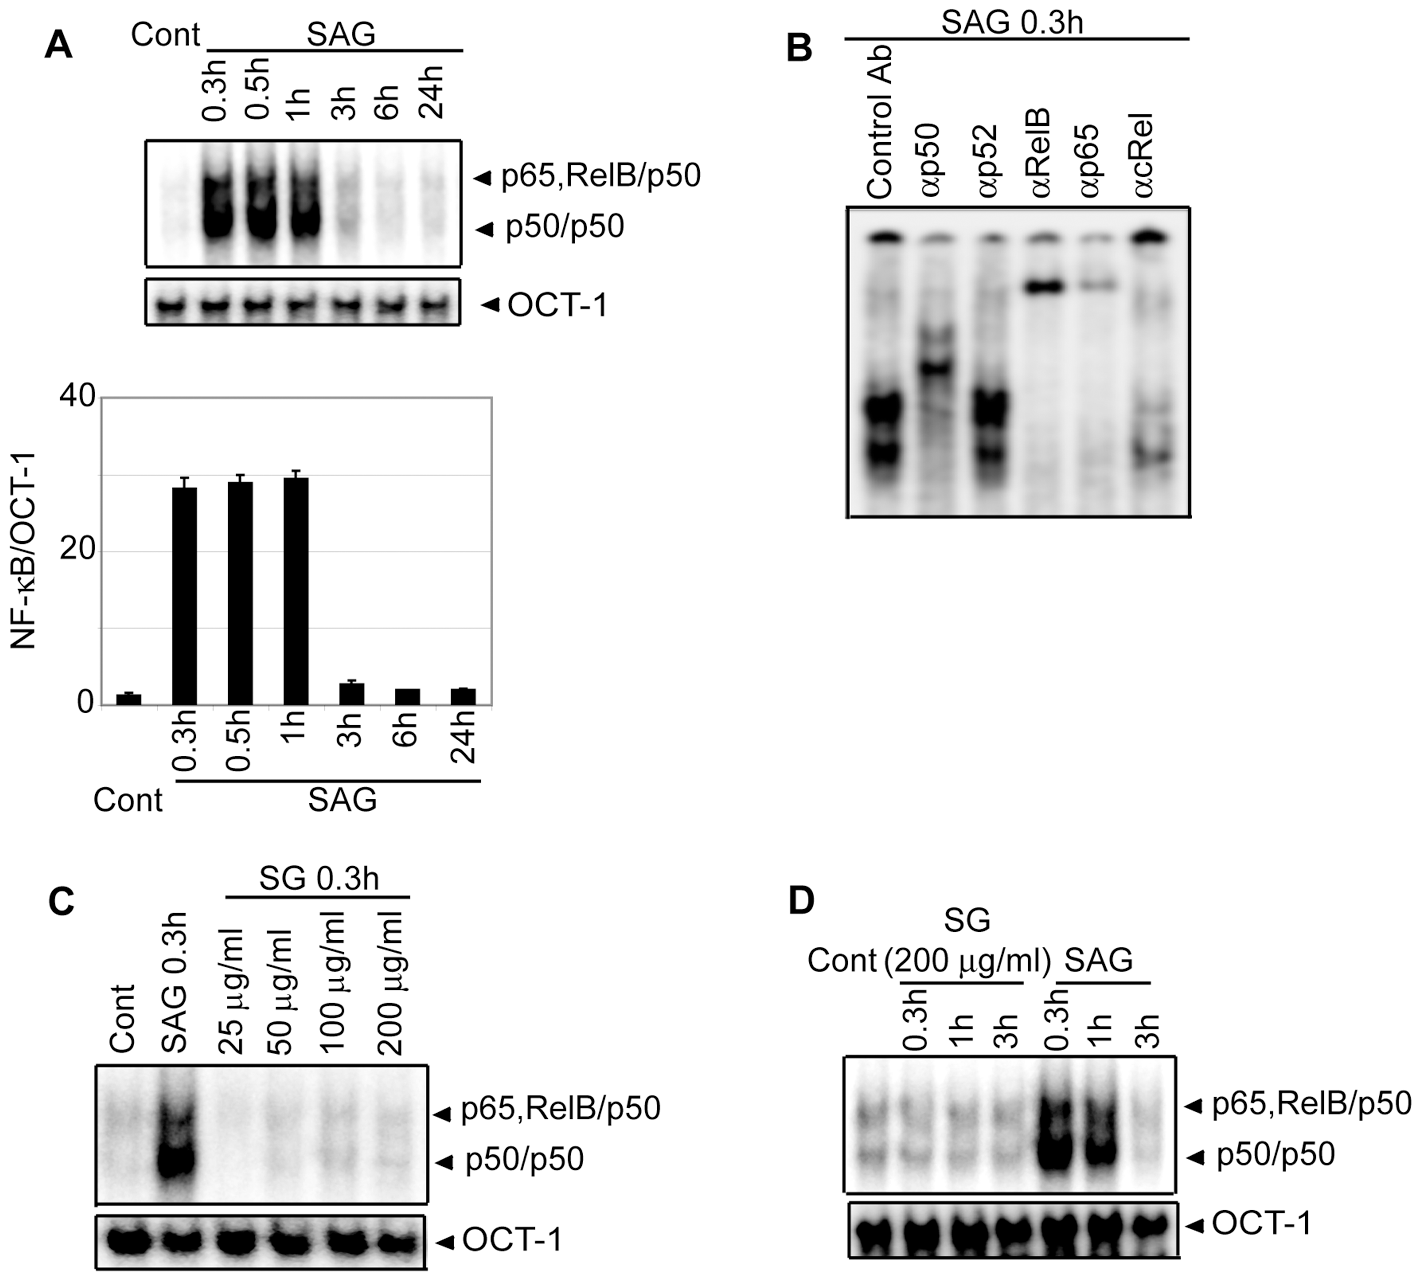 Stimulation with SAG increases nuclear NF-κB DNA binding activity in BMDCs.